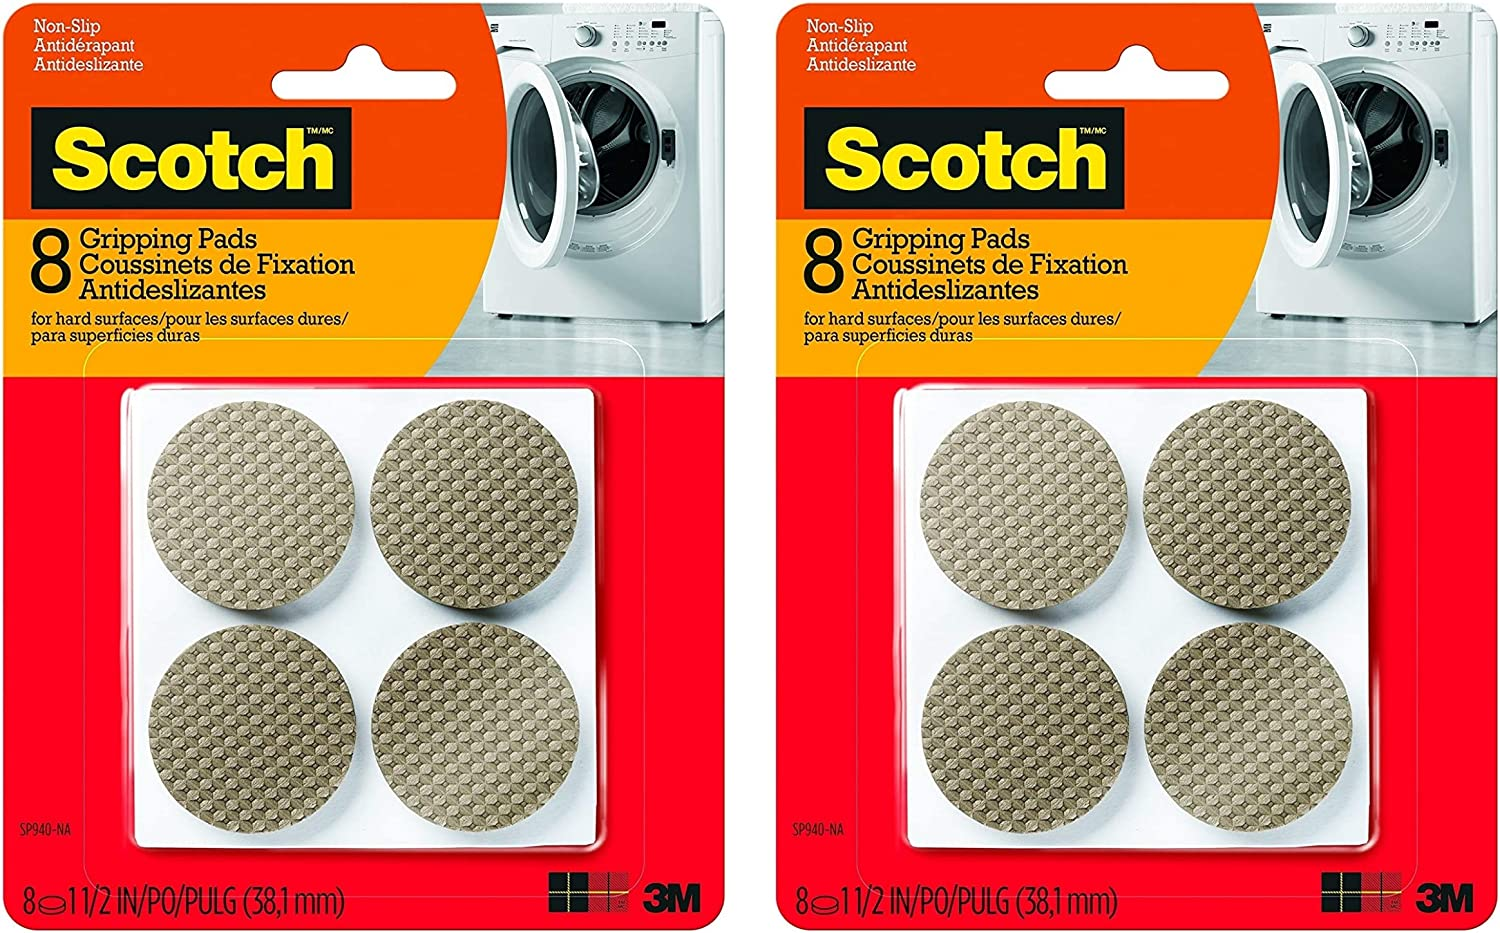 8 Pads//Pack Round - 2 Pack SP940-NA Brown Scotch Gripping Pads 1.5-Inch Diameter